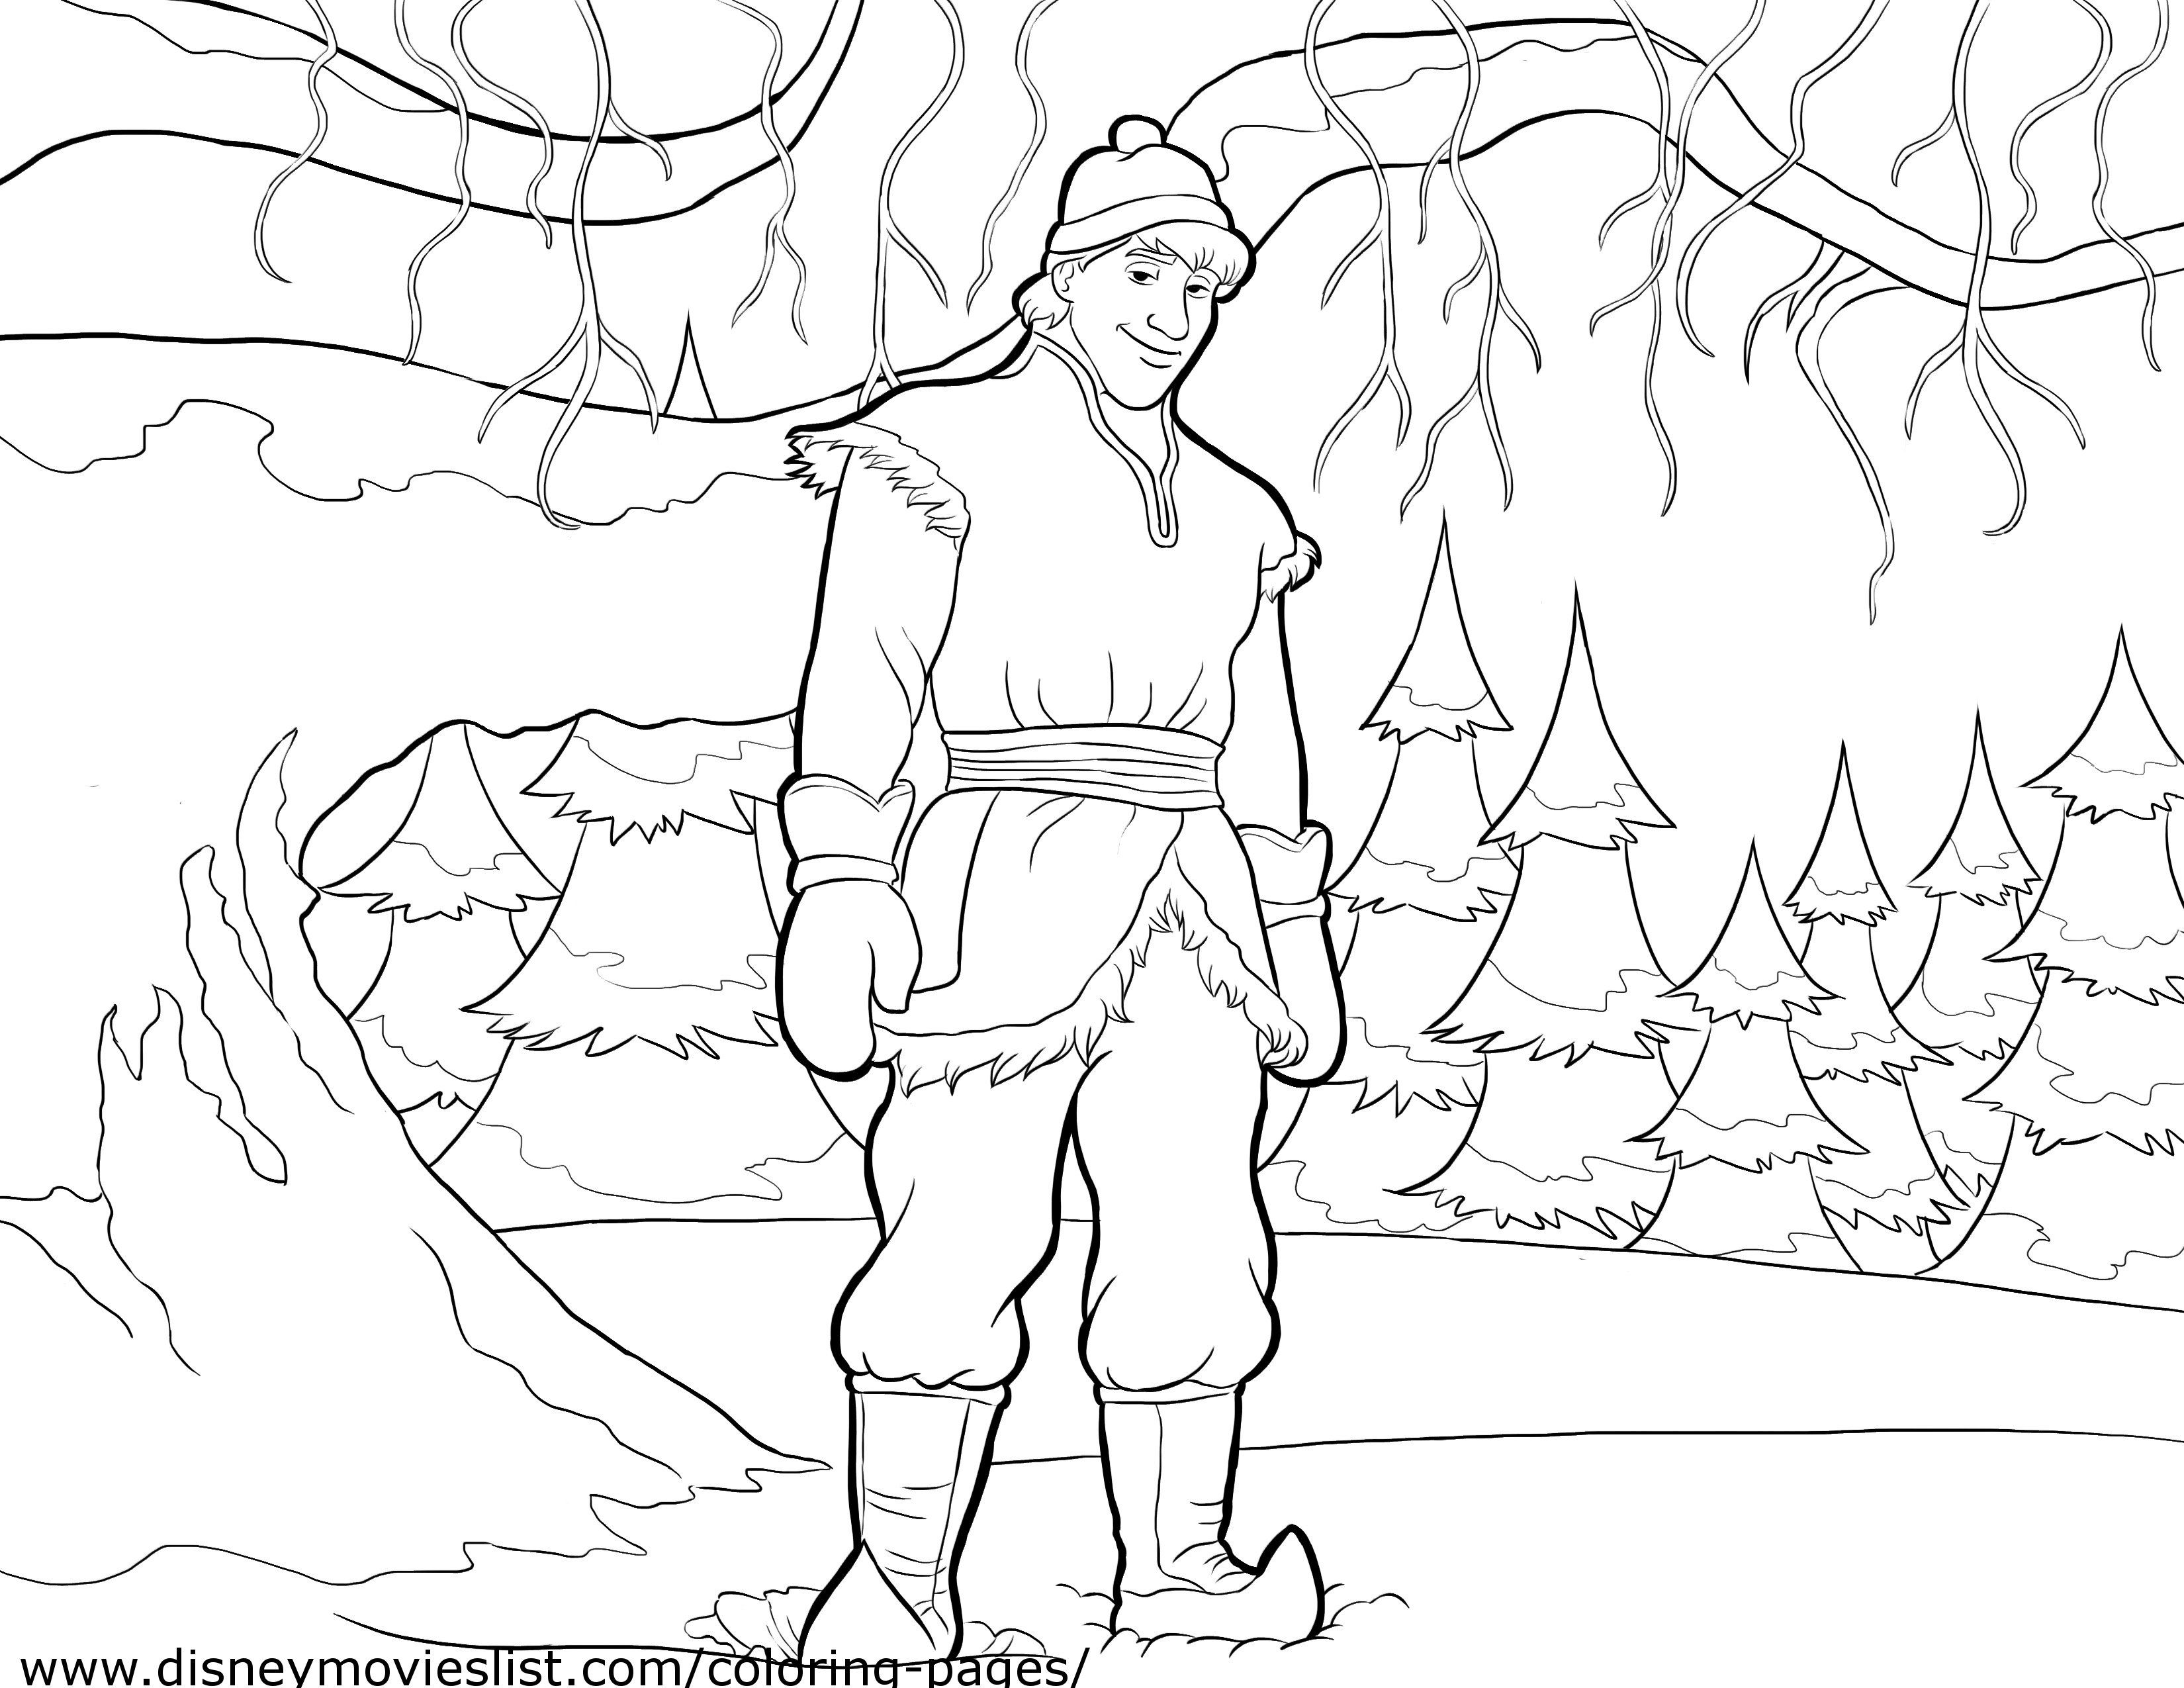 disneys frozen coloring pages sheet free disney printable frozen color page - Frozen Printable Coloring Pictures